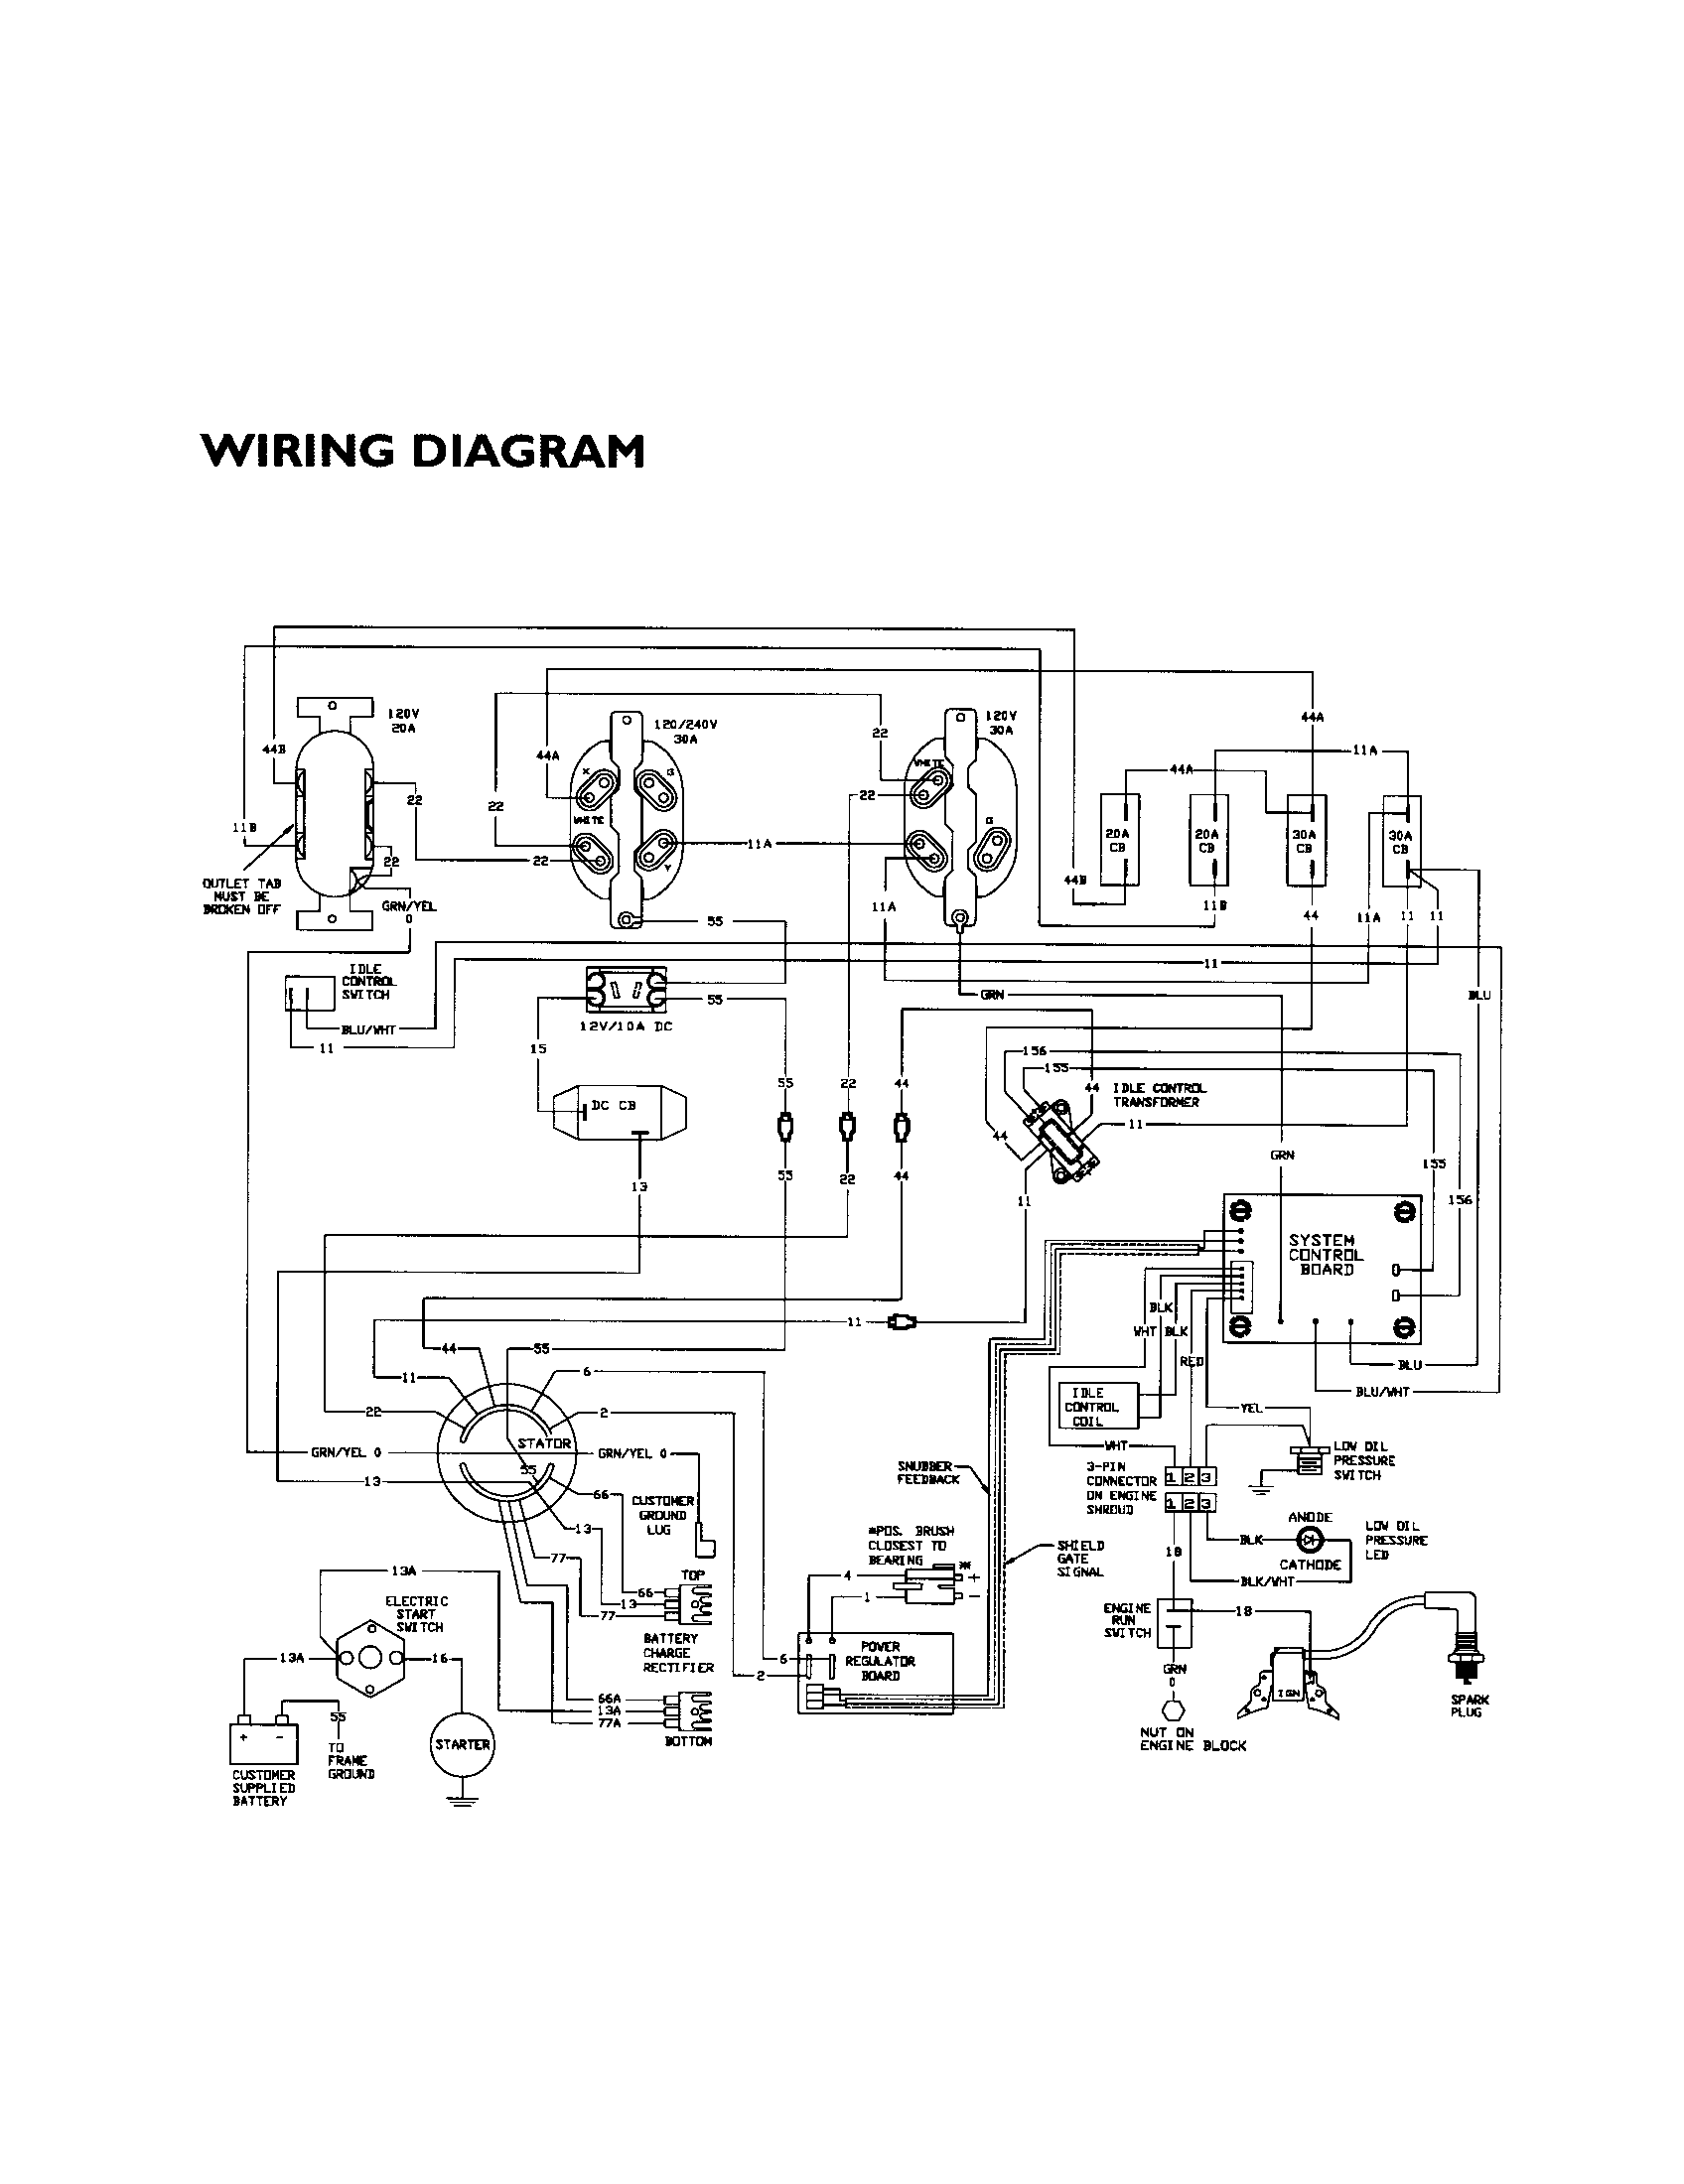 hight resolution of generac control wiring wiring diagram expert generac nexus controller wiring diagram generac control wiring